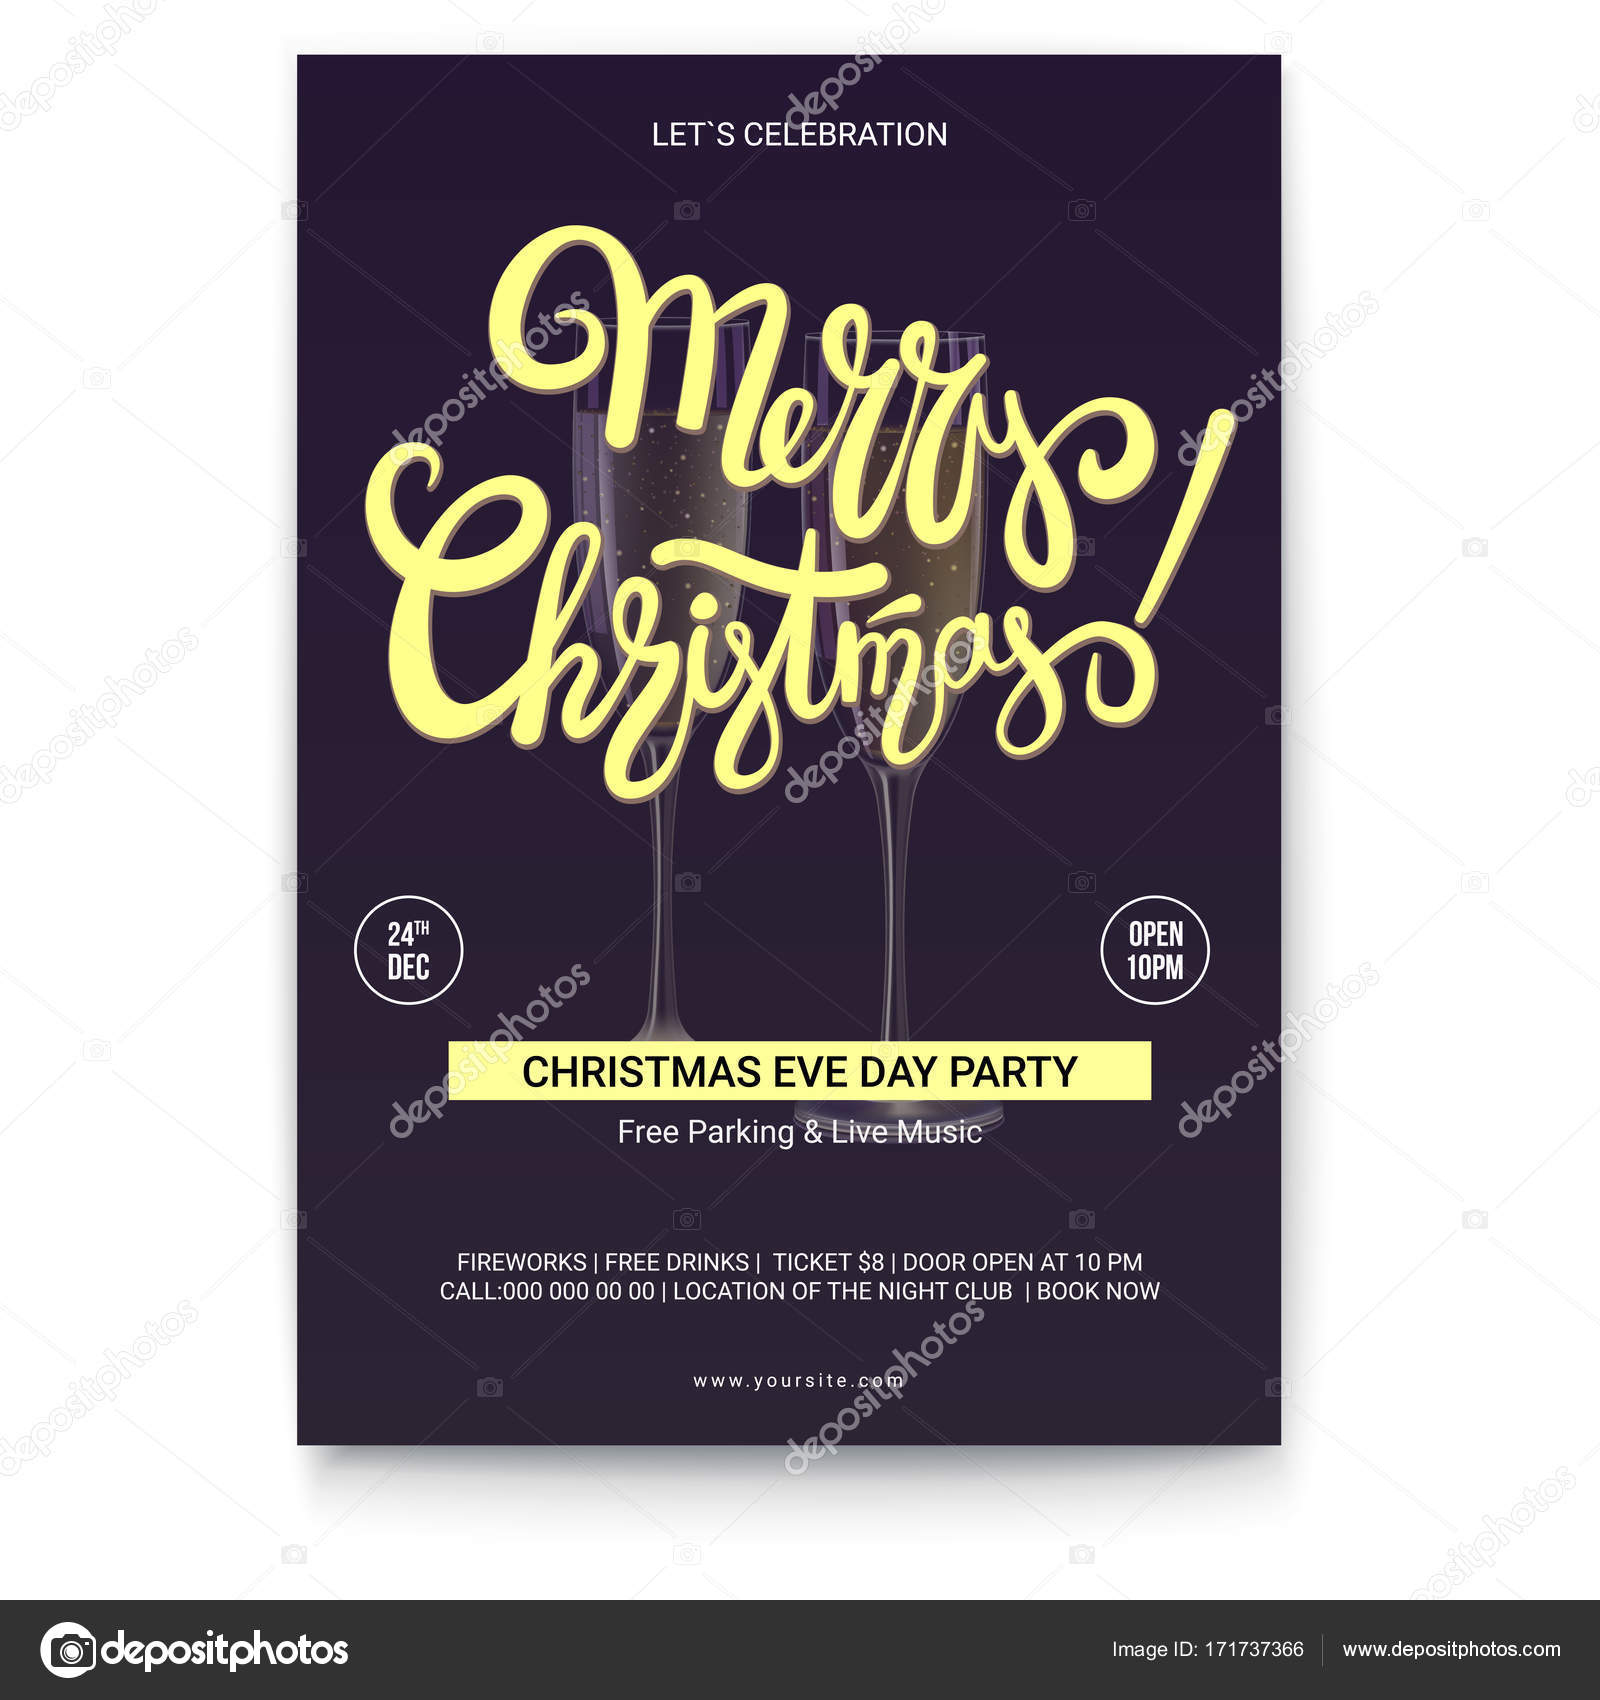 Merry christmas template of greetings poster with place for text merry christmas template of greetings poster with place for text handwritten lettering design on dark background mock up for creative arts print design kristyandbryce Choice Image